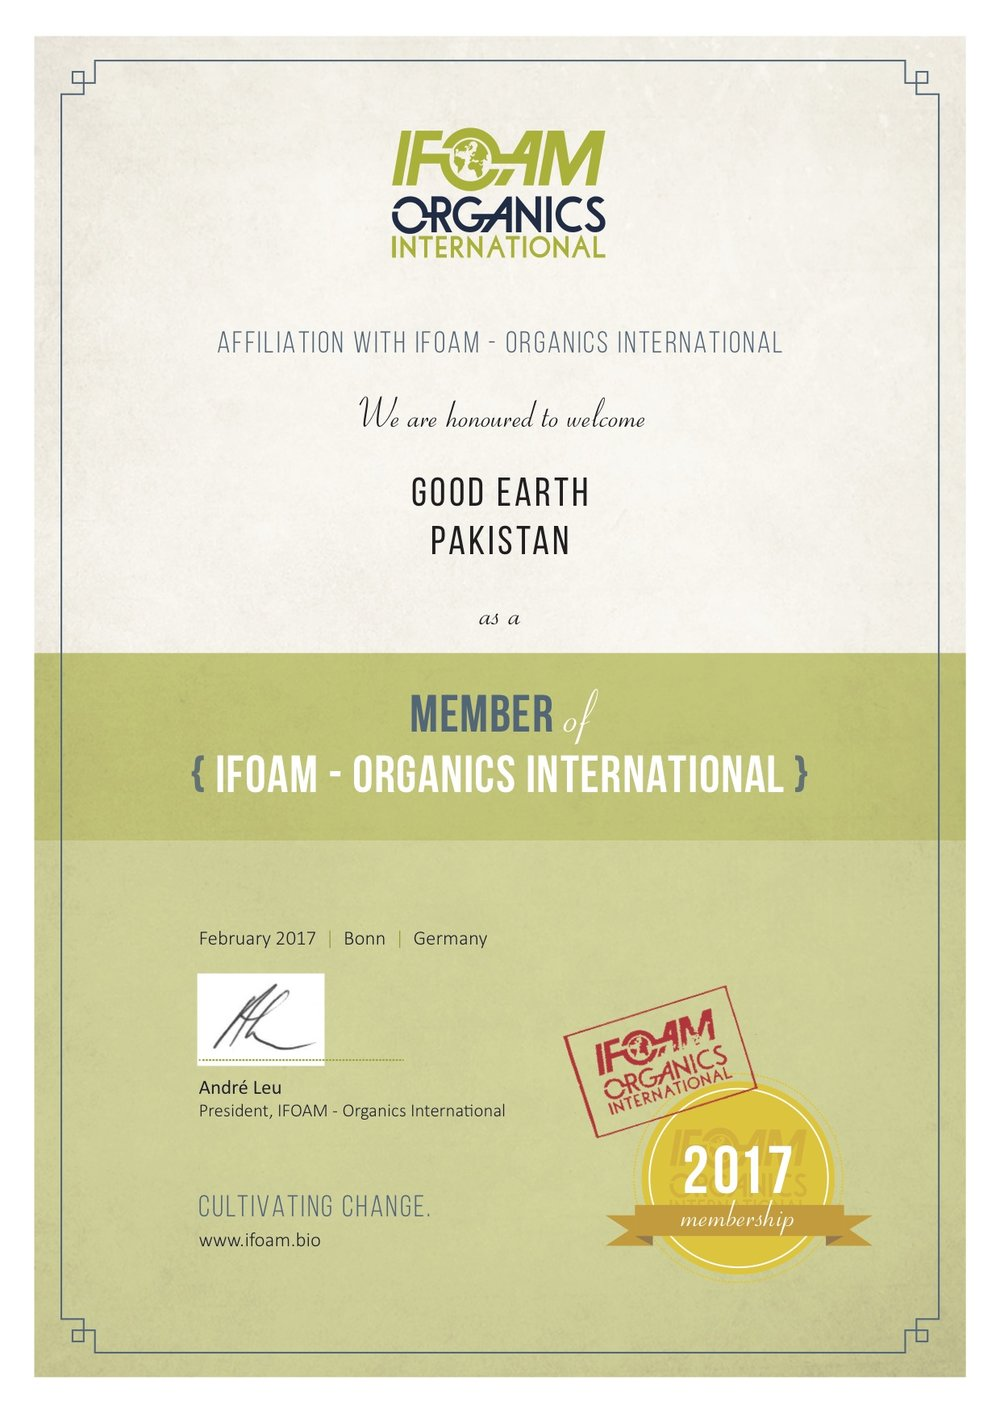 IFOAM GoodEarth_Certificate2017.jpg